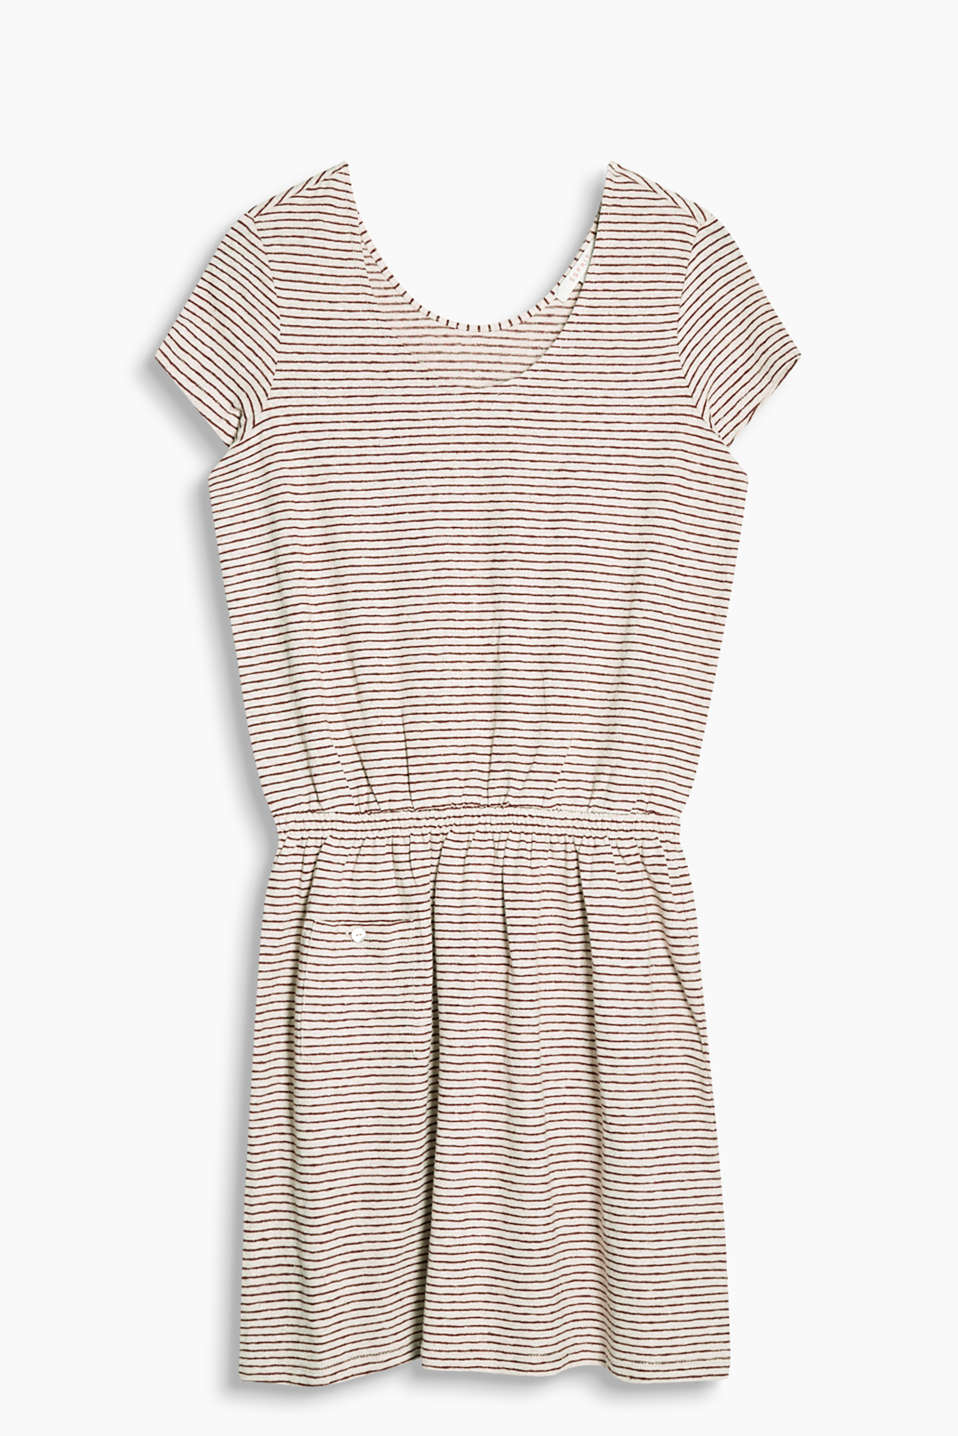 Made of airy blended linen: jersey dress with all-over stripes, an elasticated waistband and patch pocket